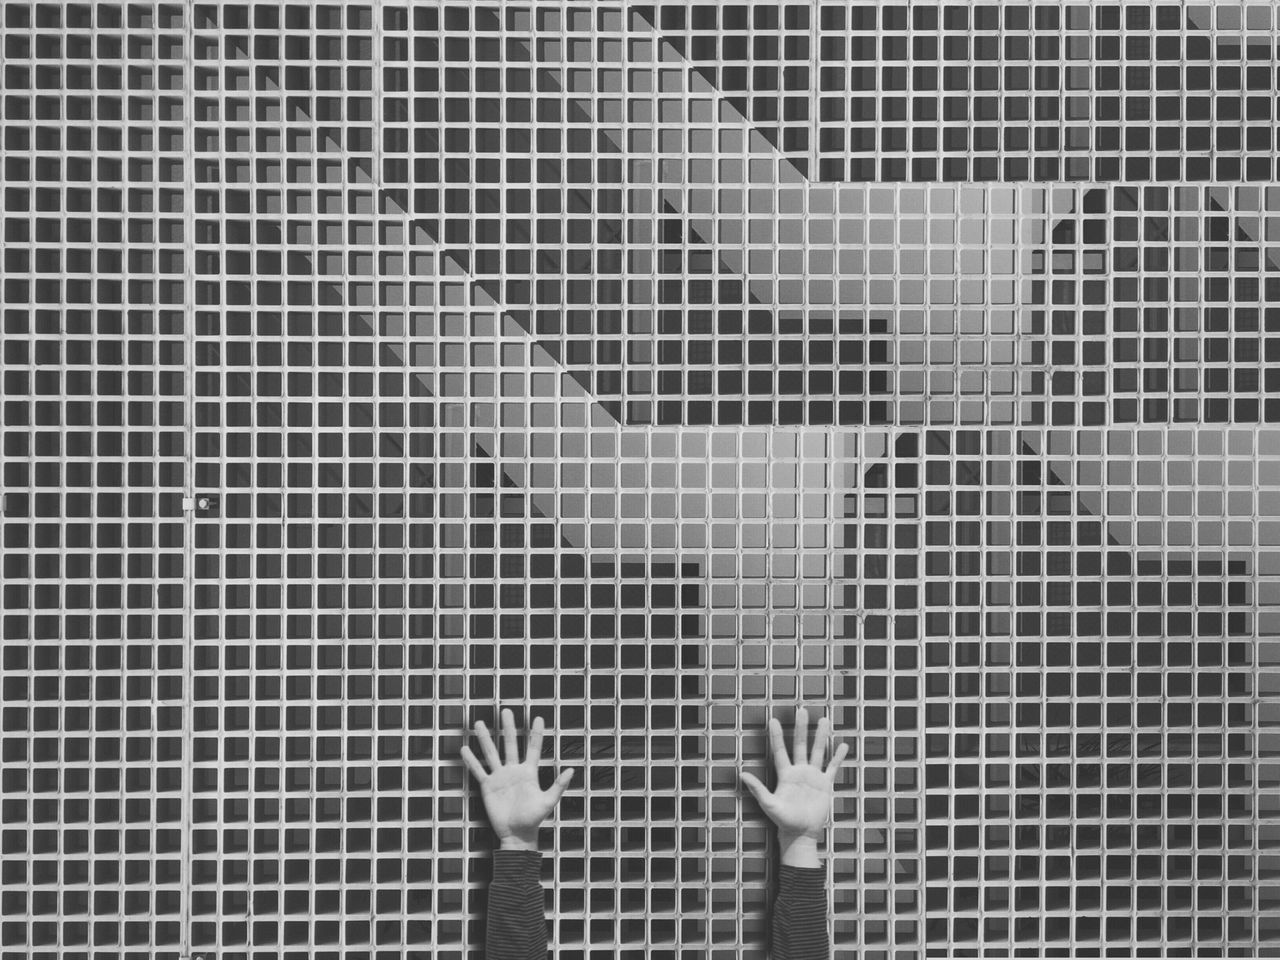 Hands against patterned wall